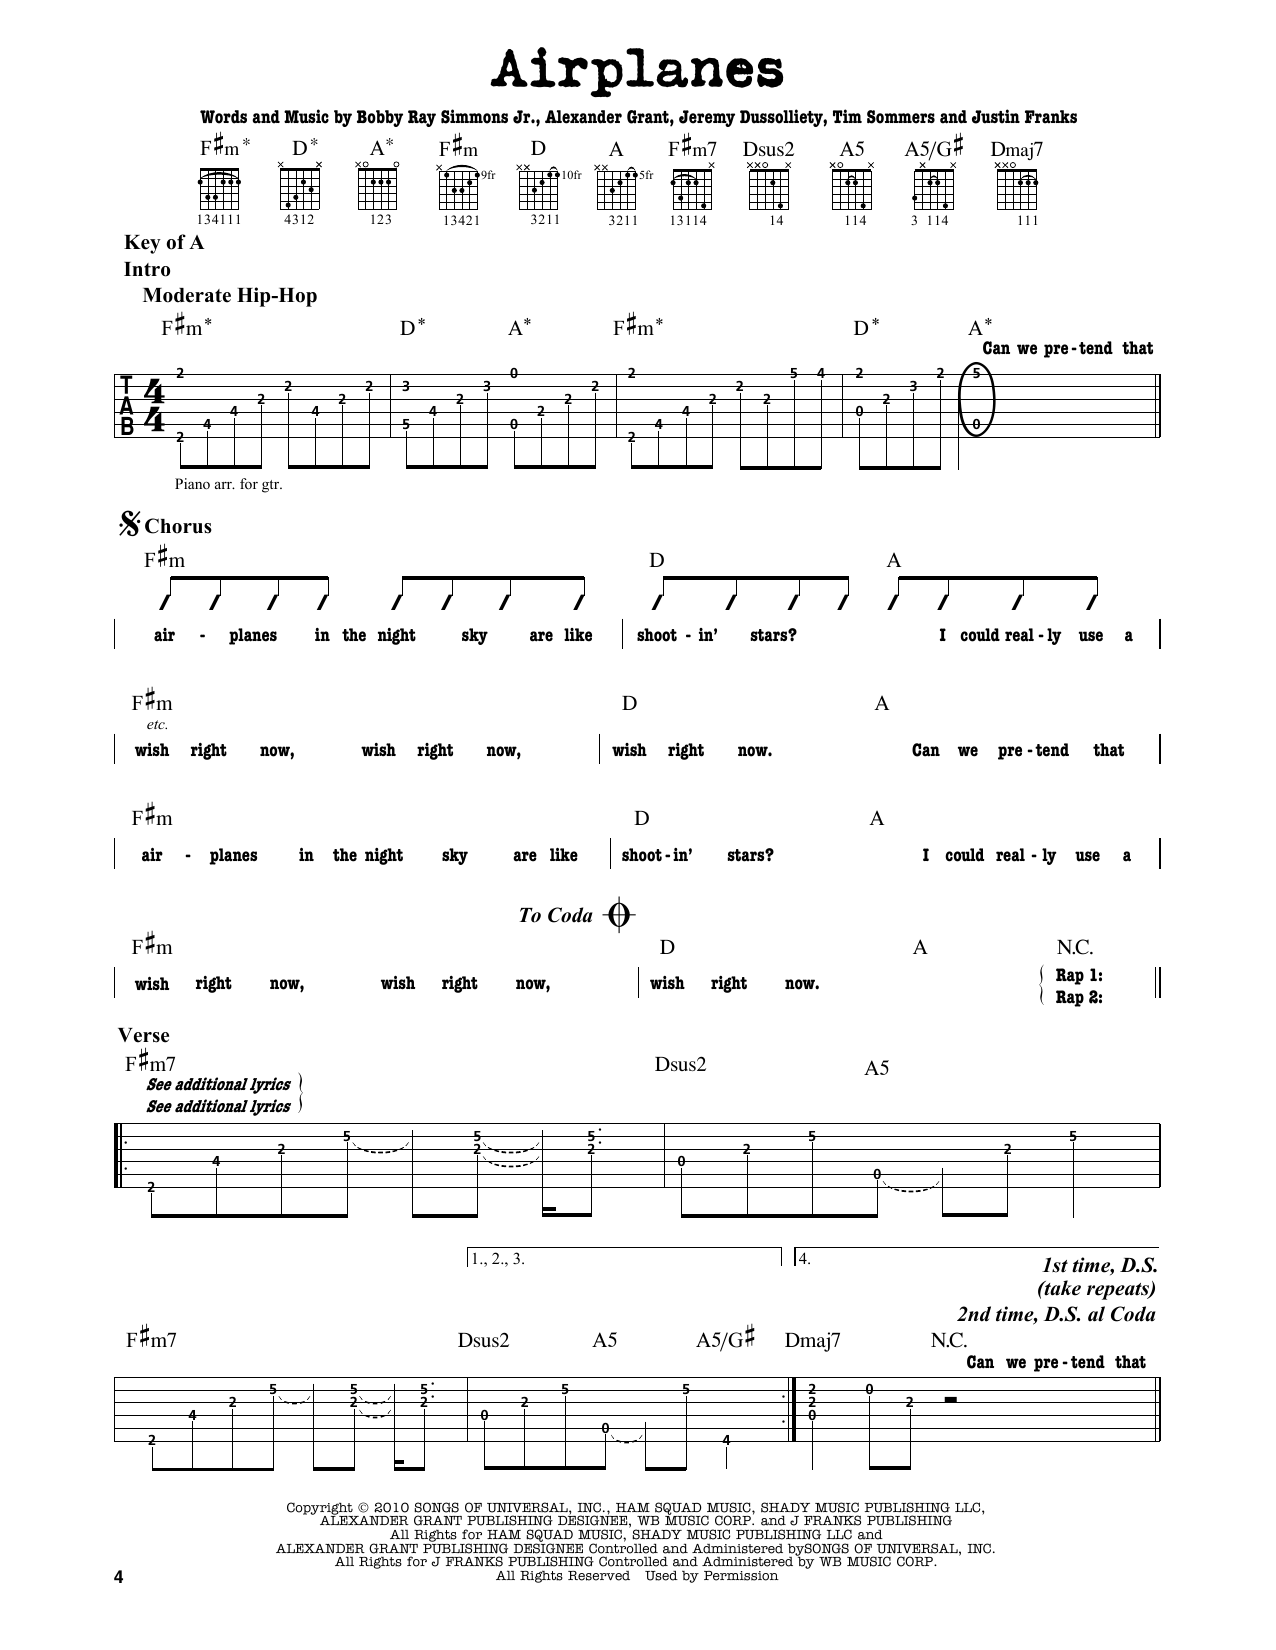 B.o.B. Airplanes (feat. Hayley Williams) sheet music notes and chords. Download Printable PDF.